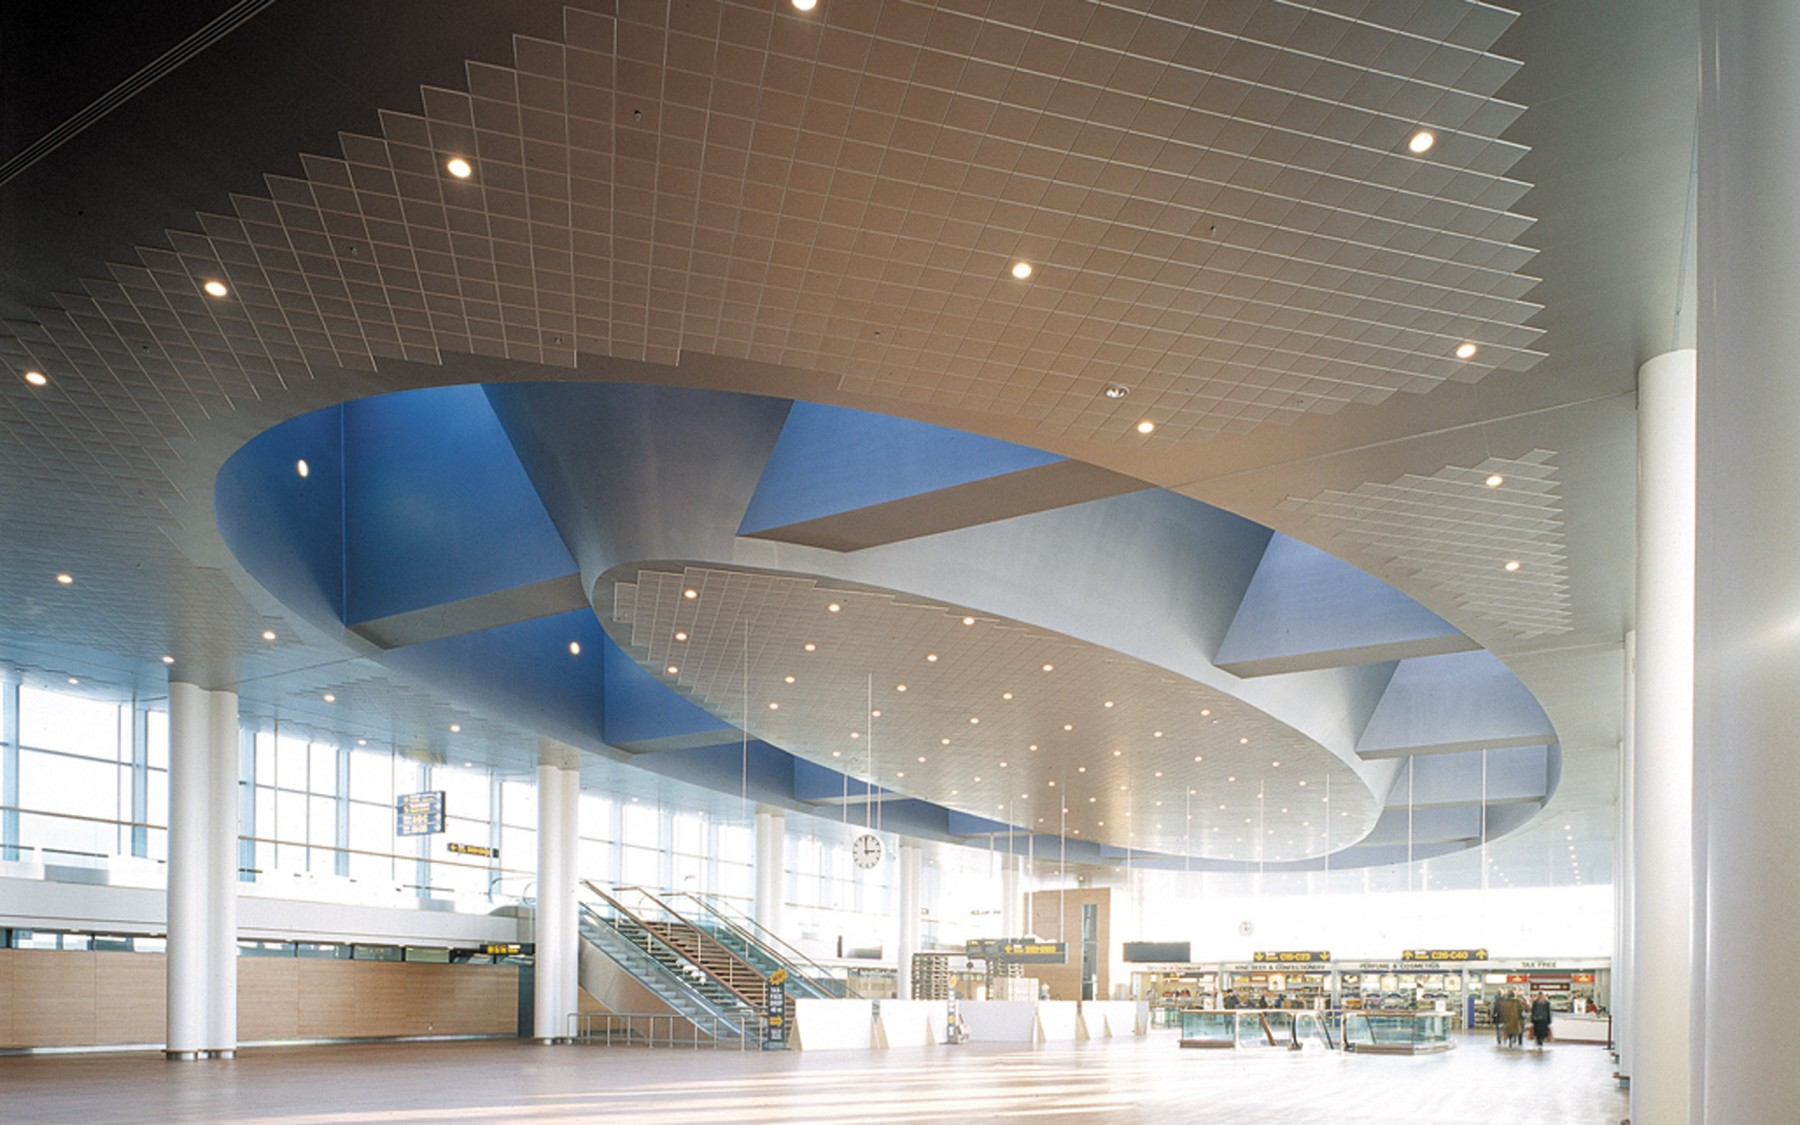 Products dampa clip in tiels copenhagen cph airport dome dailygadgetfo Choice Image